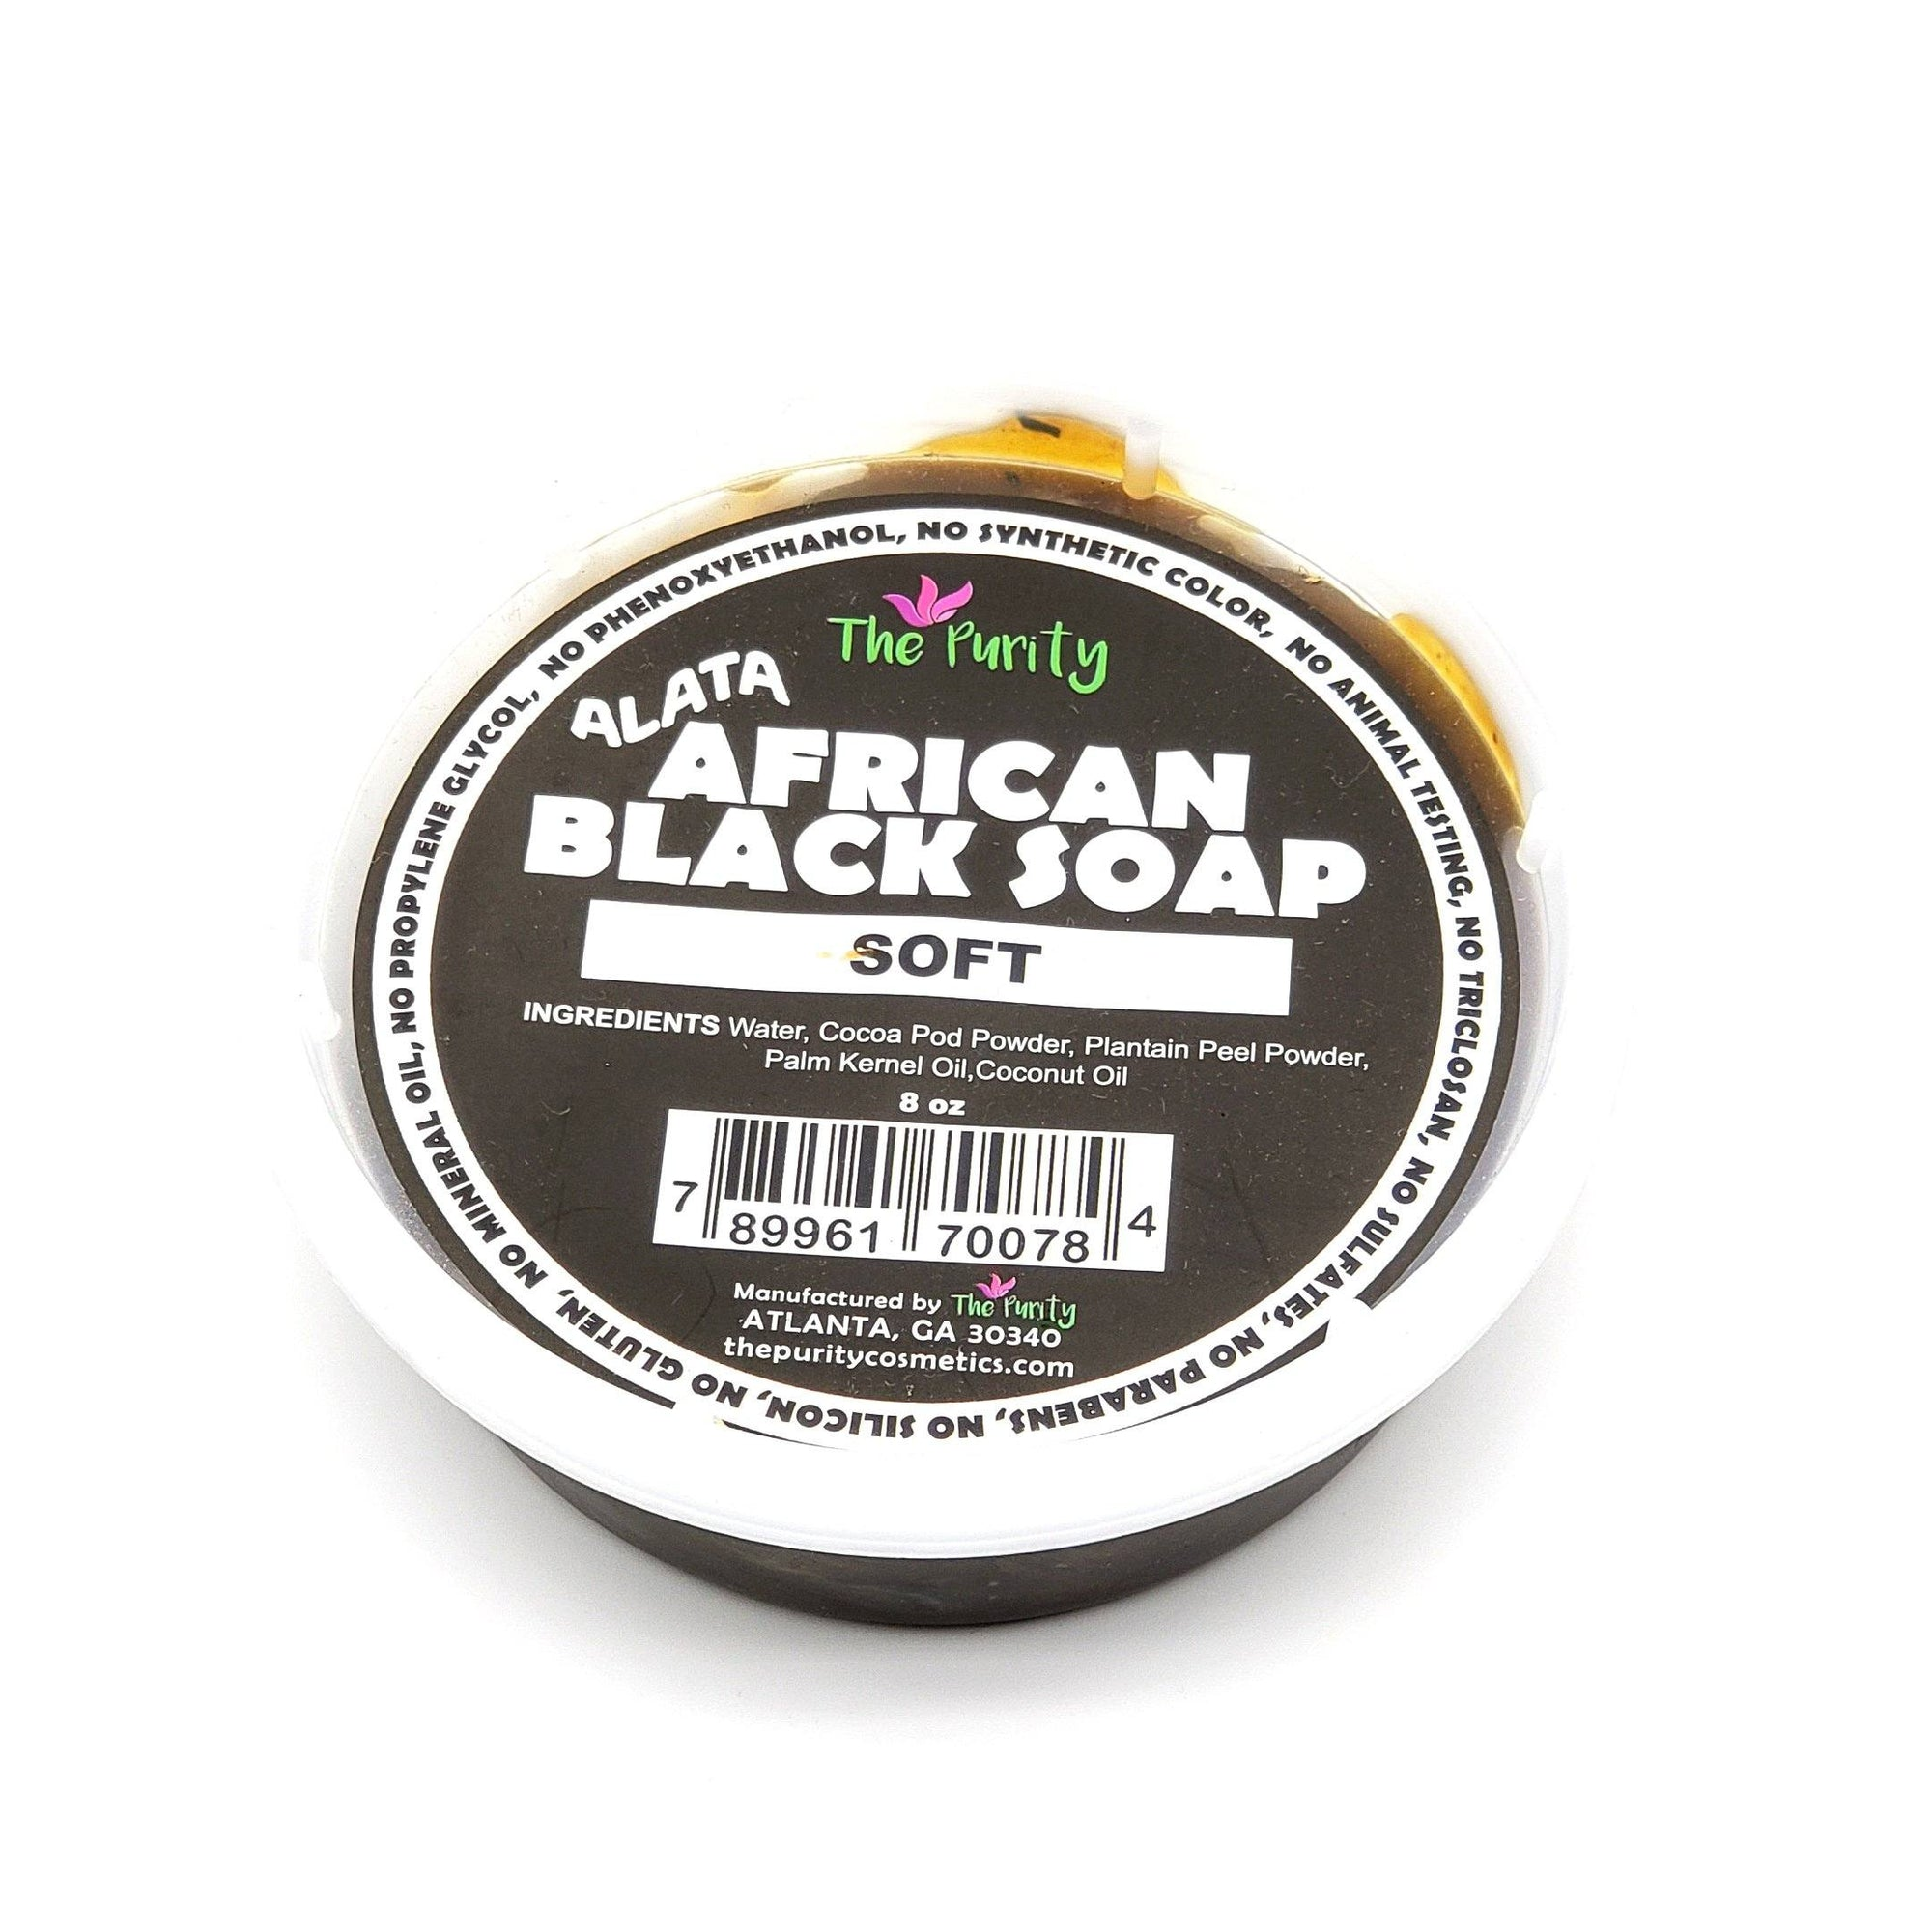 The Purity African Black Soap Soft